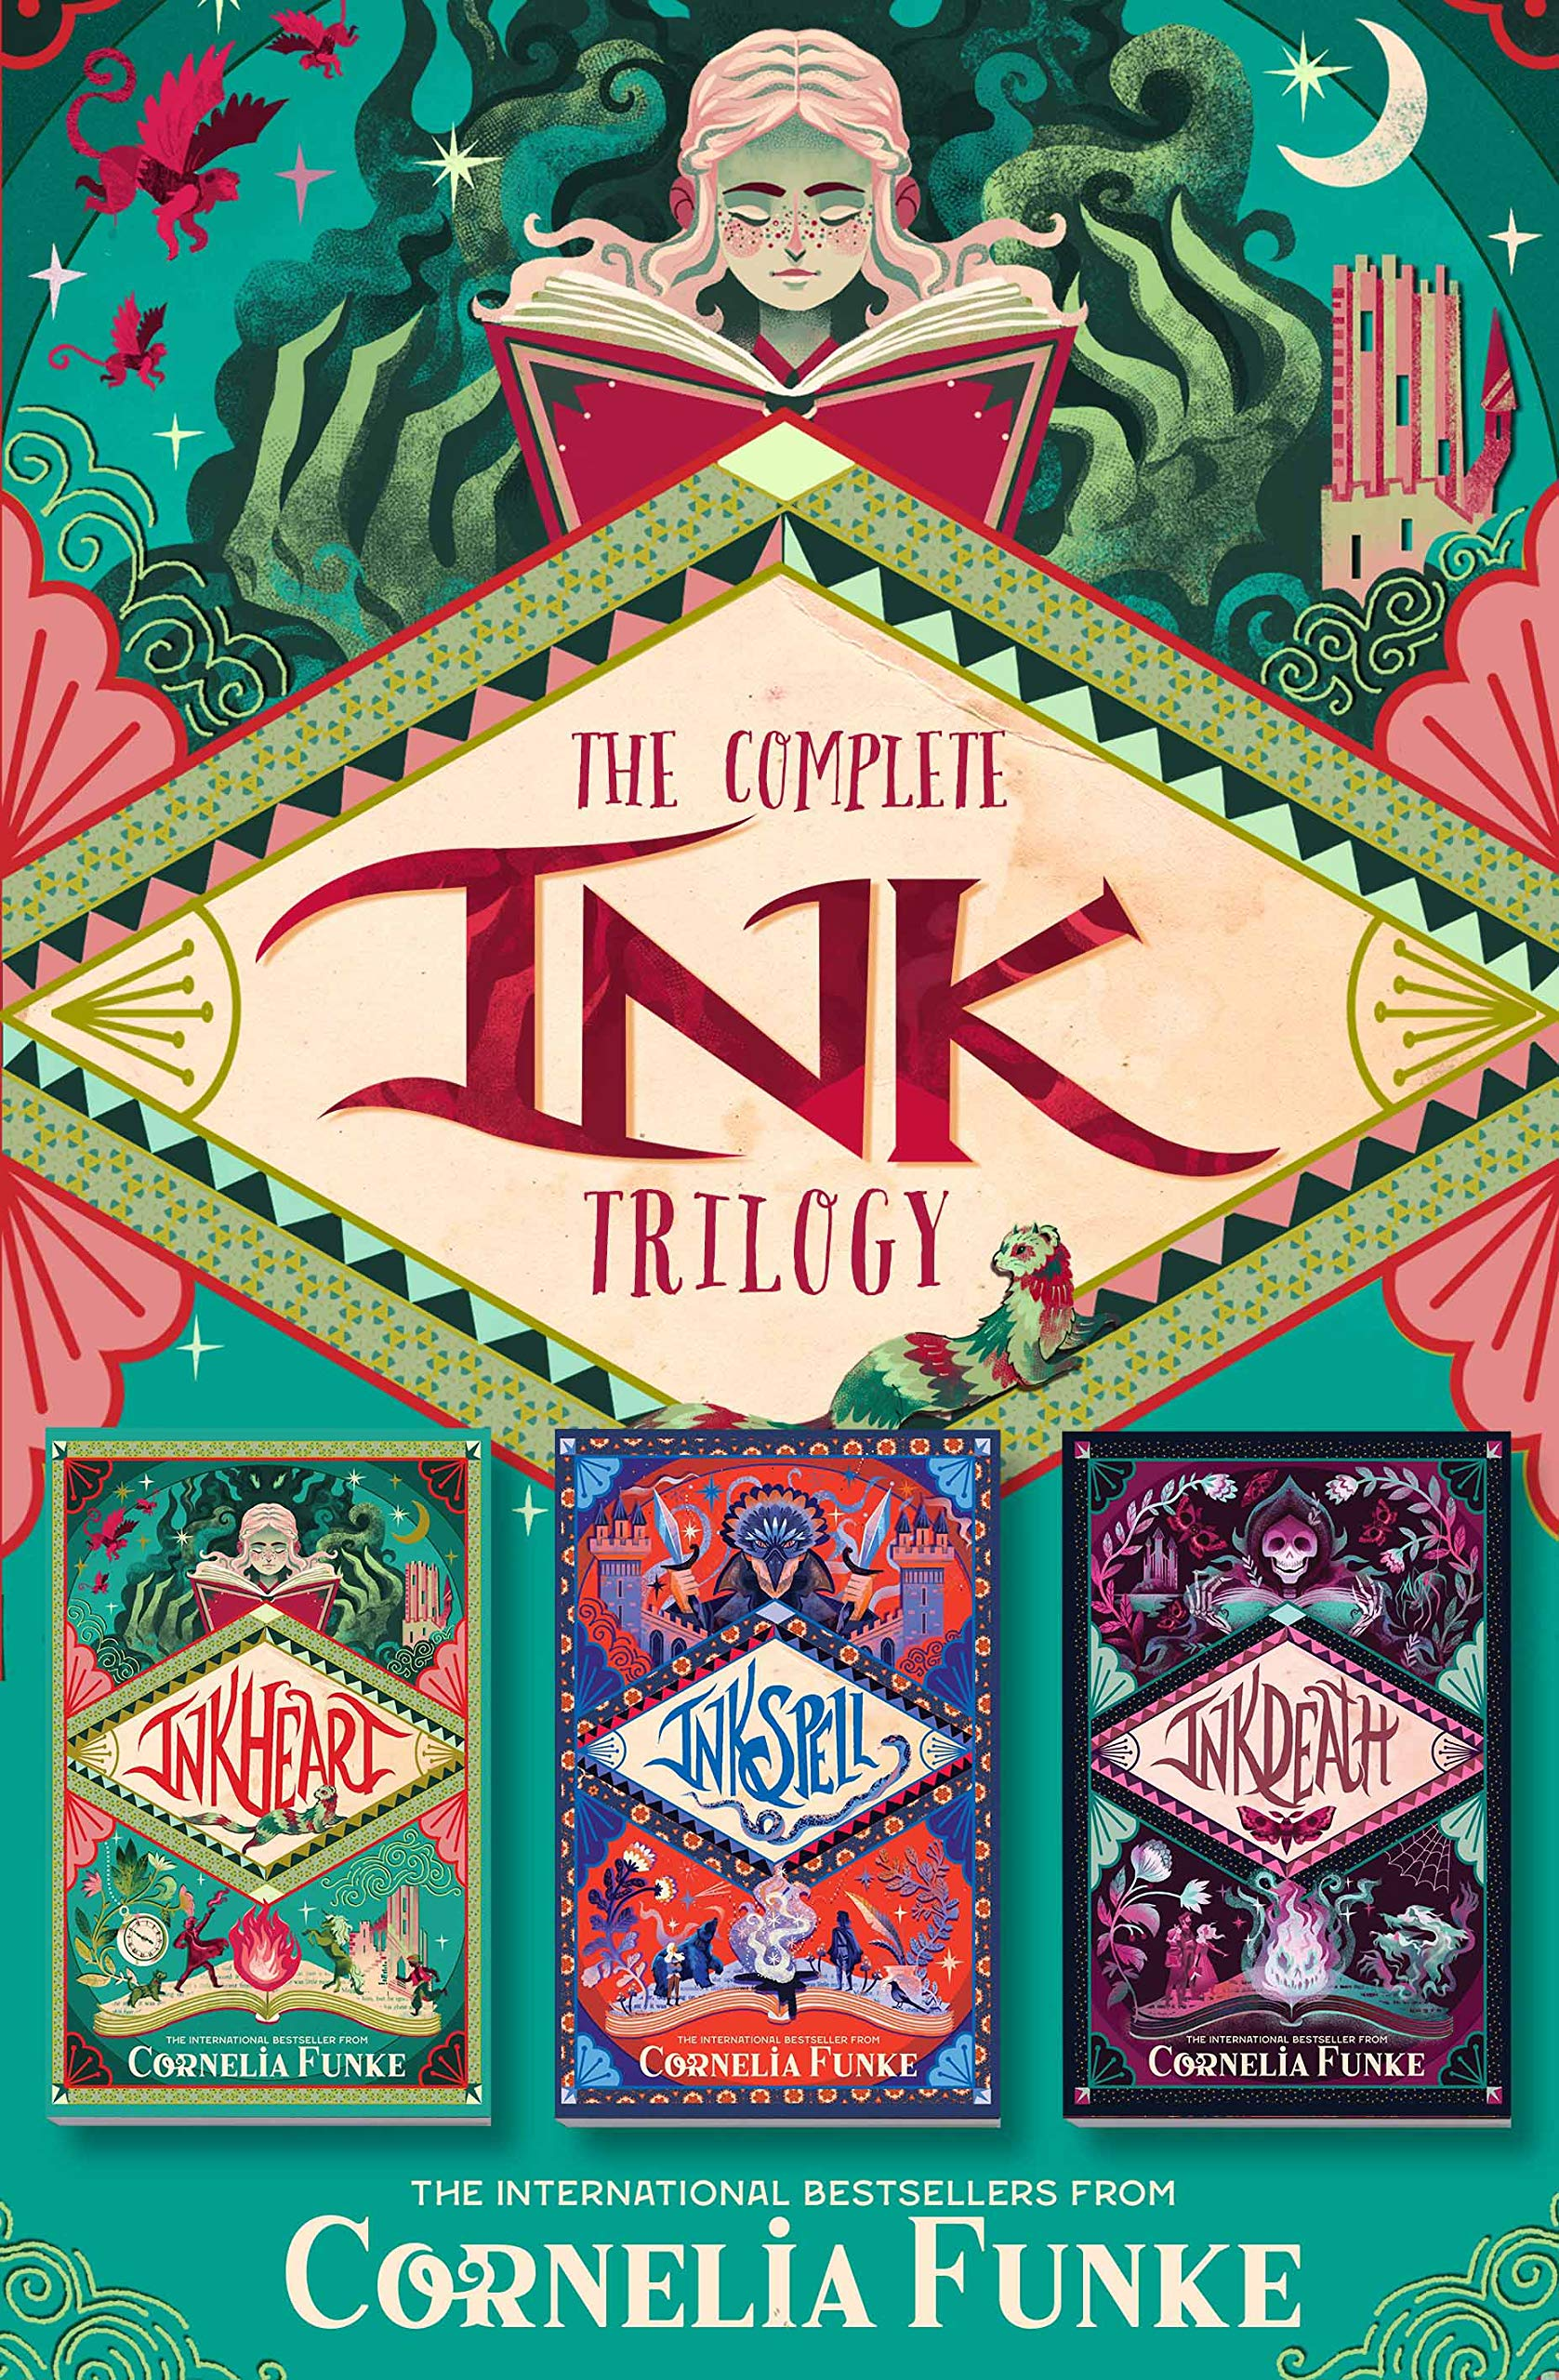 The Complete Ink Trilogy